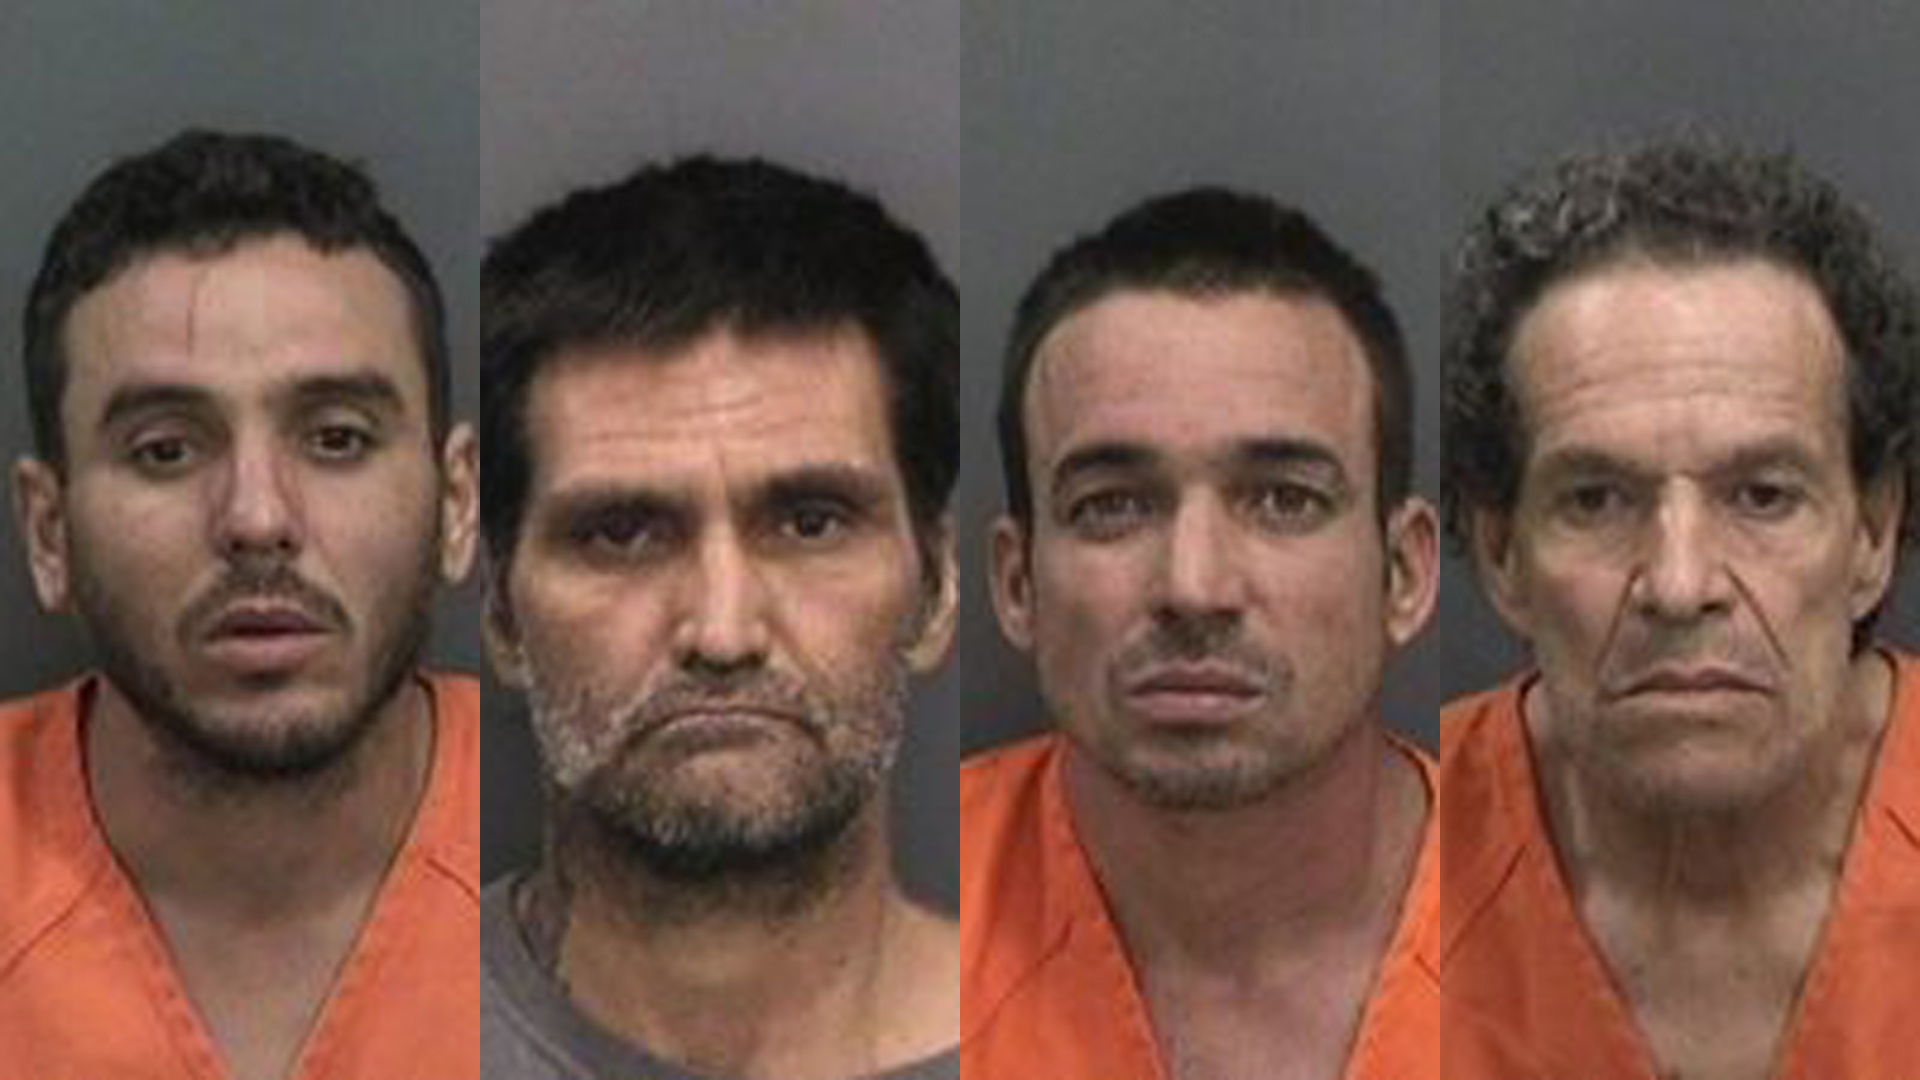 From left: Lemuel Escobar, Alberto Obaya, Humberto Ramirez, and Vidal Estrada. (Credit: Hillsborough County Sheriff's Office)